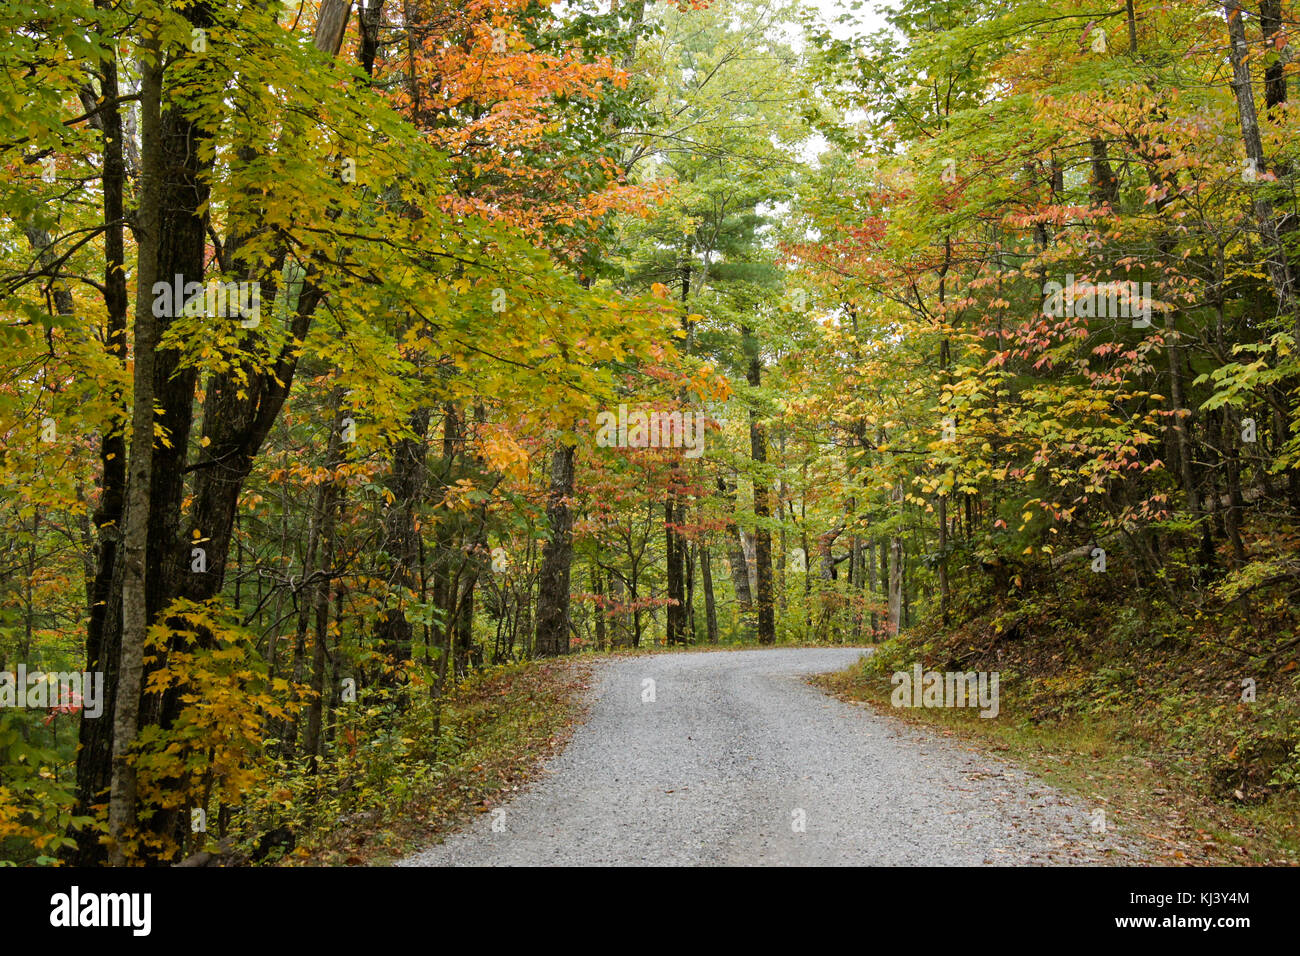 Autumn foliage along Rich Mountain Road out of Cades Cove, Great Smoky Mountains National Park, Tennessee Stock Photo